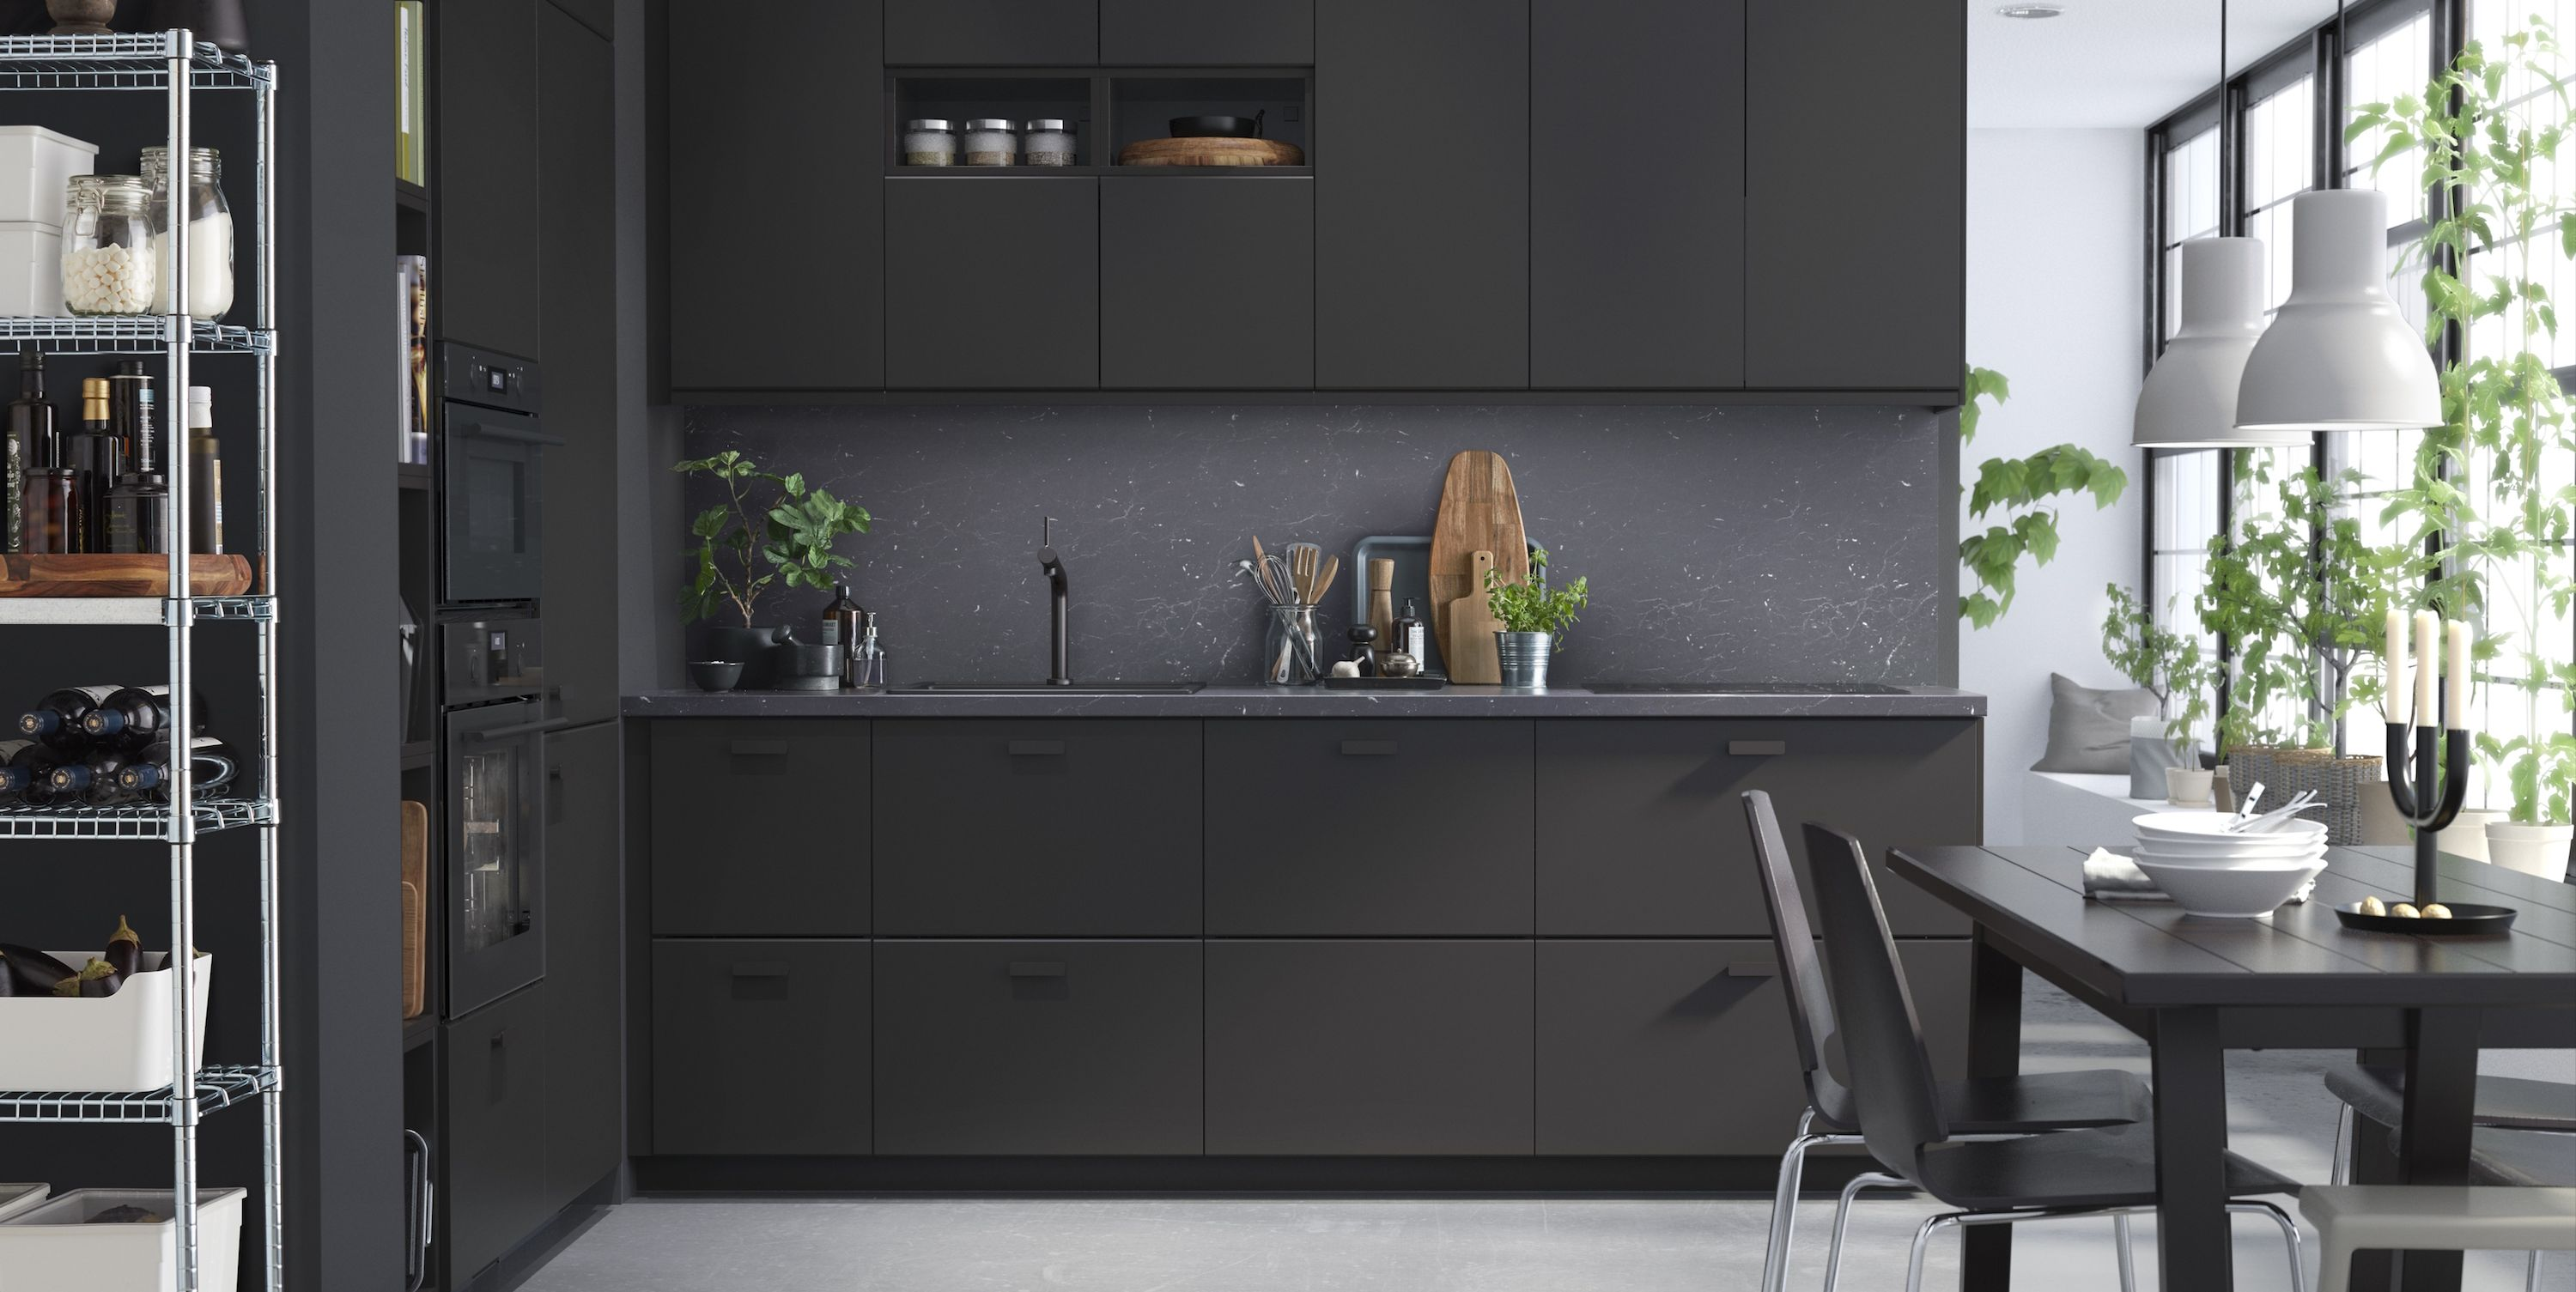 ikea kitchen cabinets made from recycled materials - black ikea cabinets